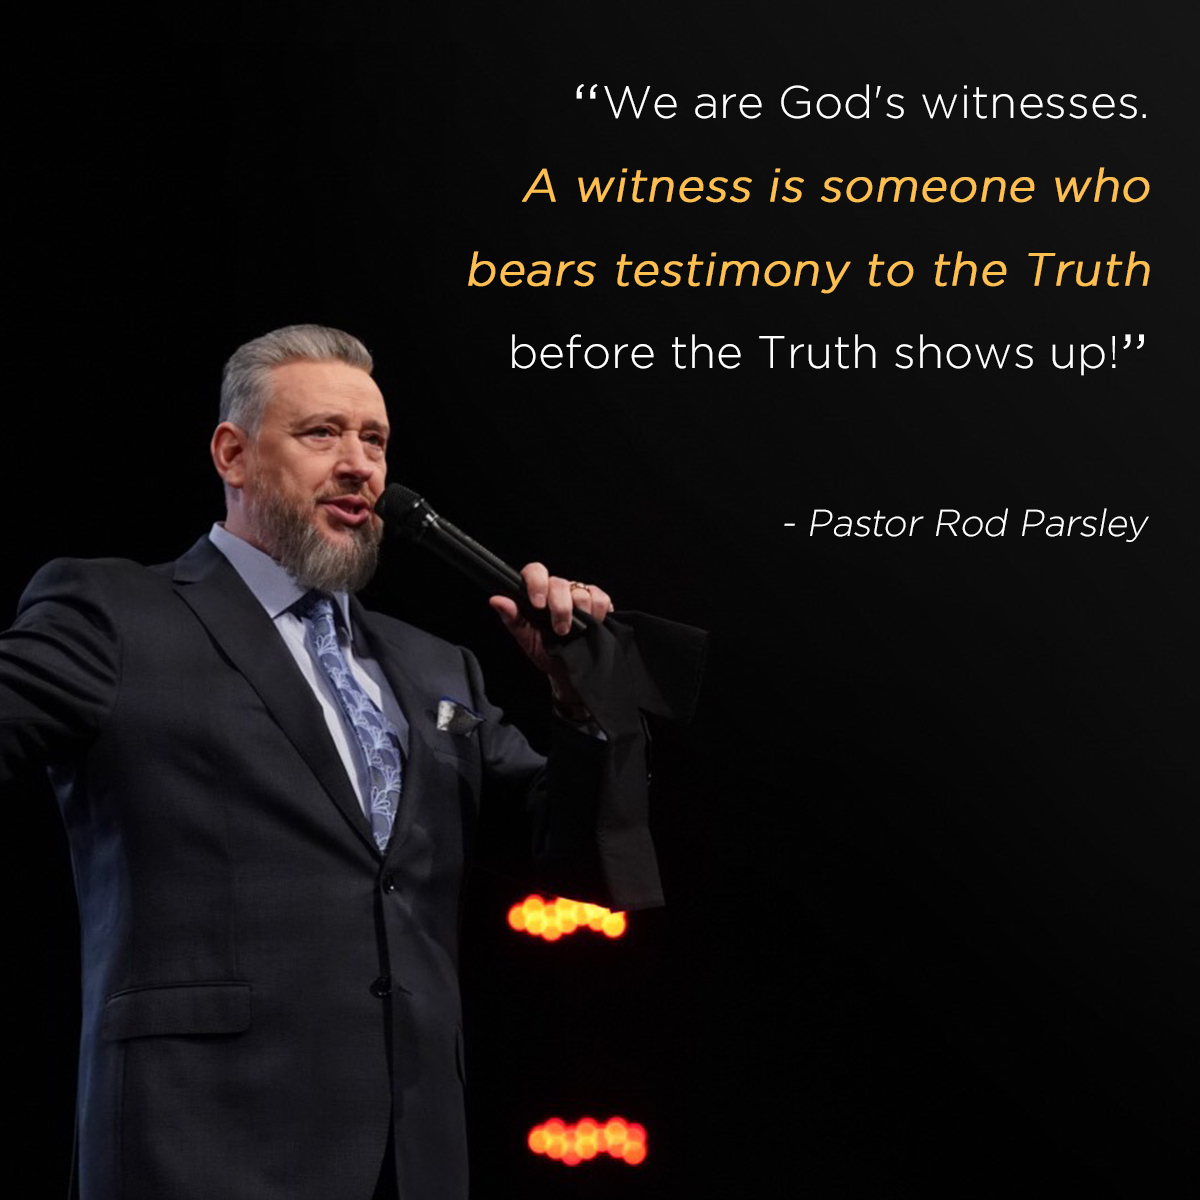 """We are God's witnesses. A witness is someone who bears testimony to the Truth before the Truth shows up!"" – Pastor Rod Parsley"